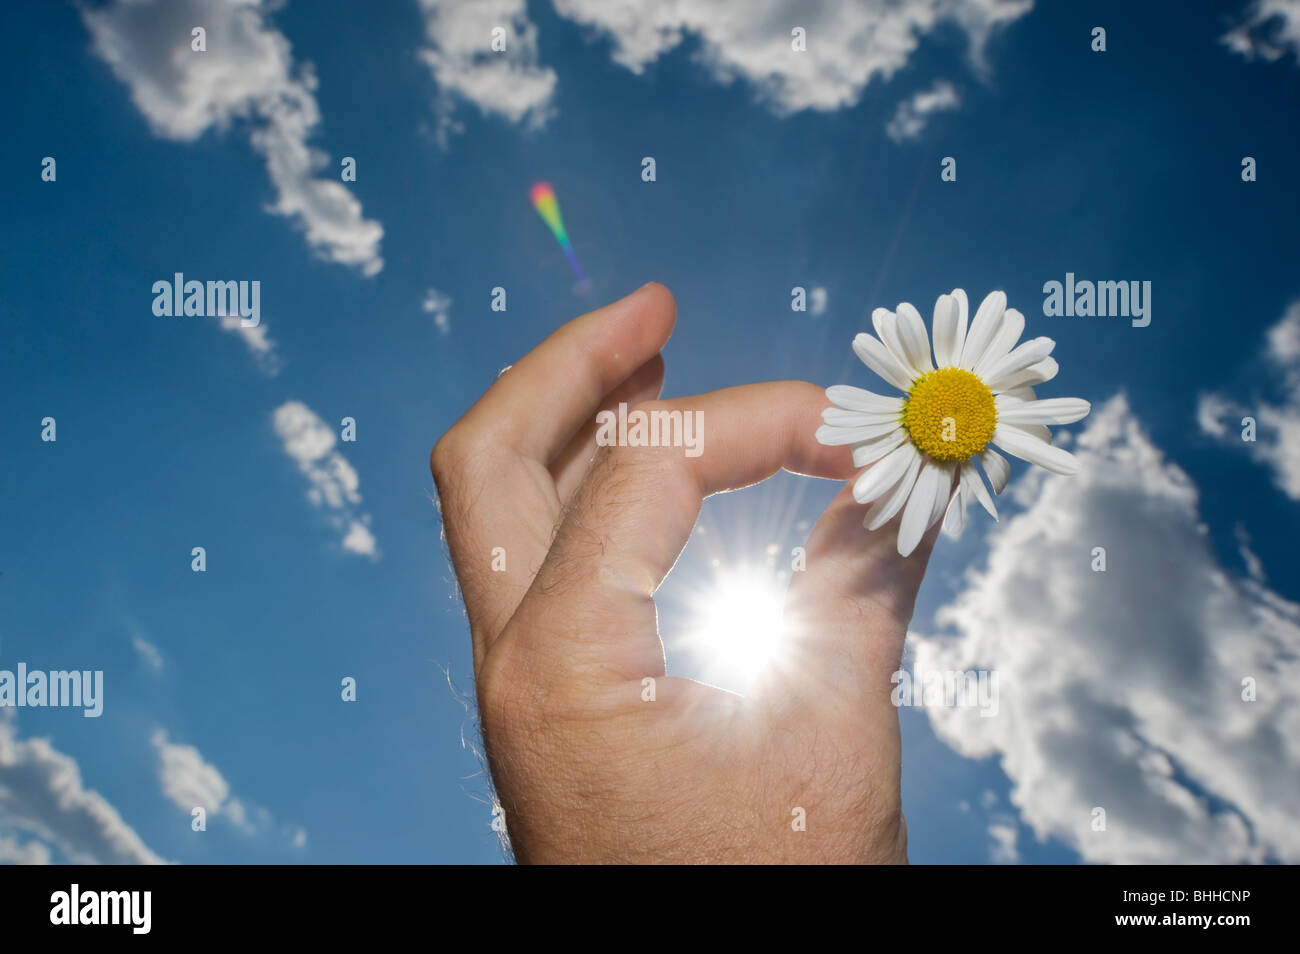 A hand holding a daisy, Sweden. - Stock Image